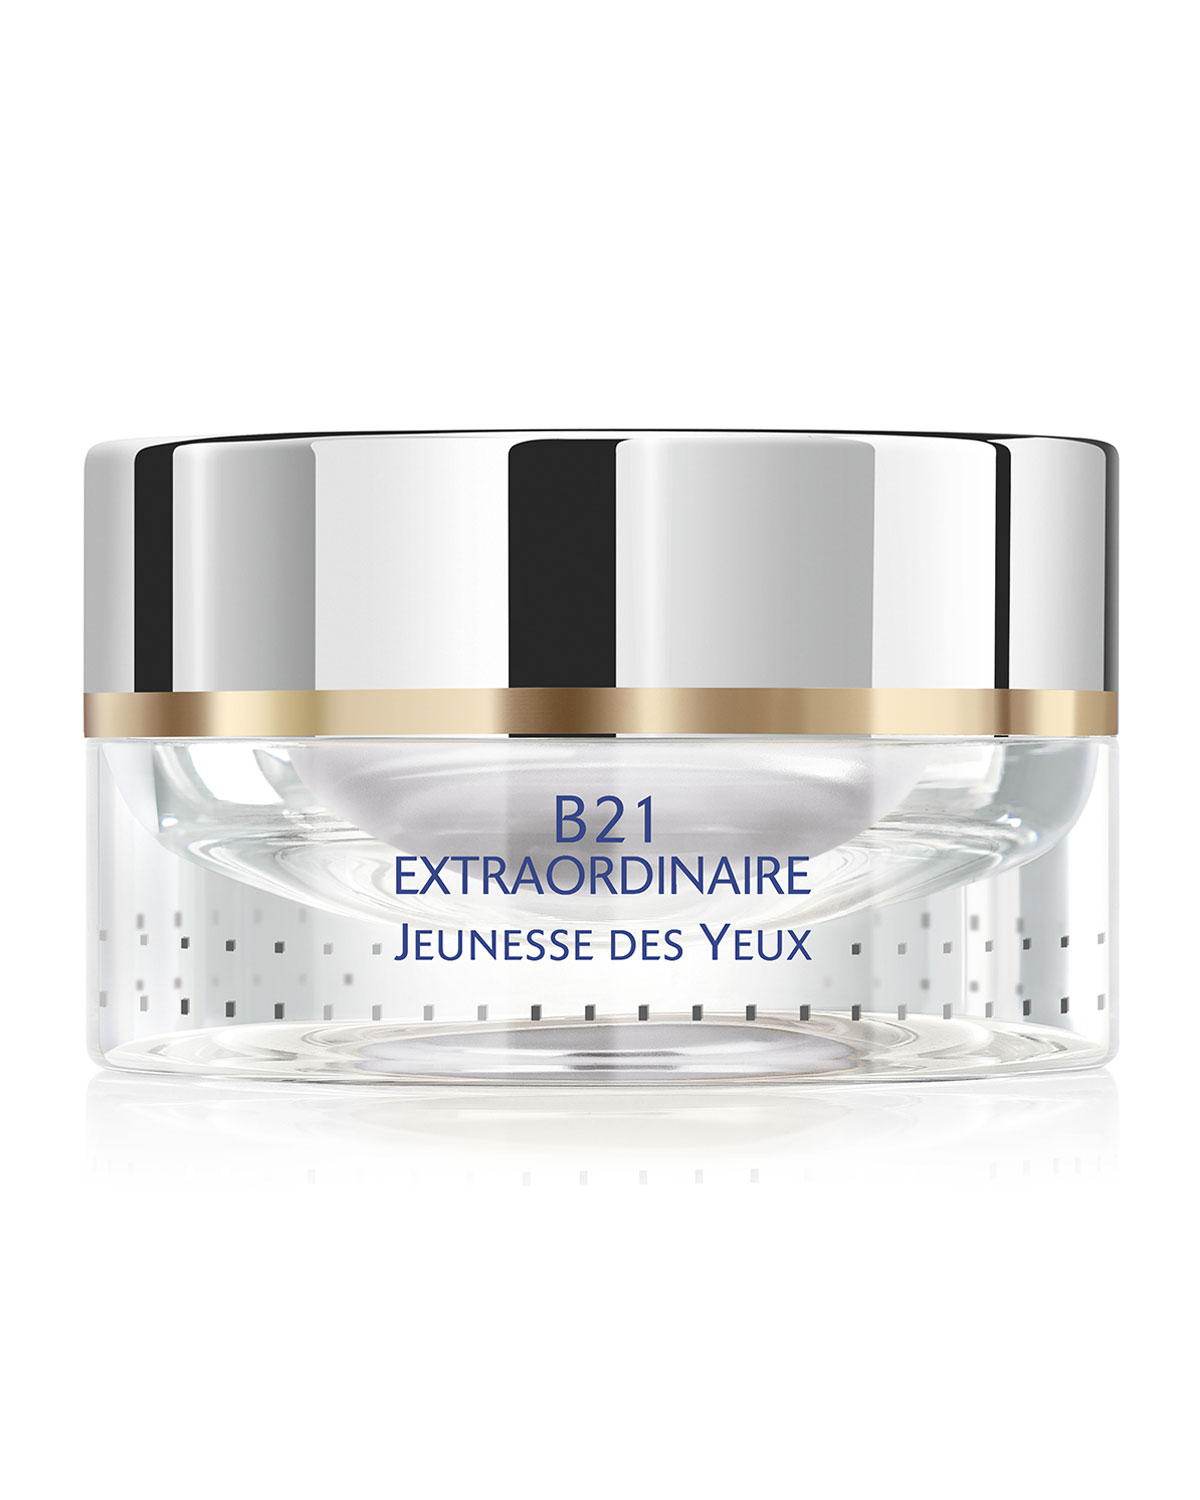 Orlane 0.5 oz. B21 Extraordinaire Absolute Youth Eye